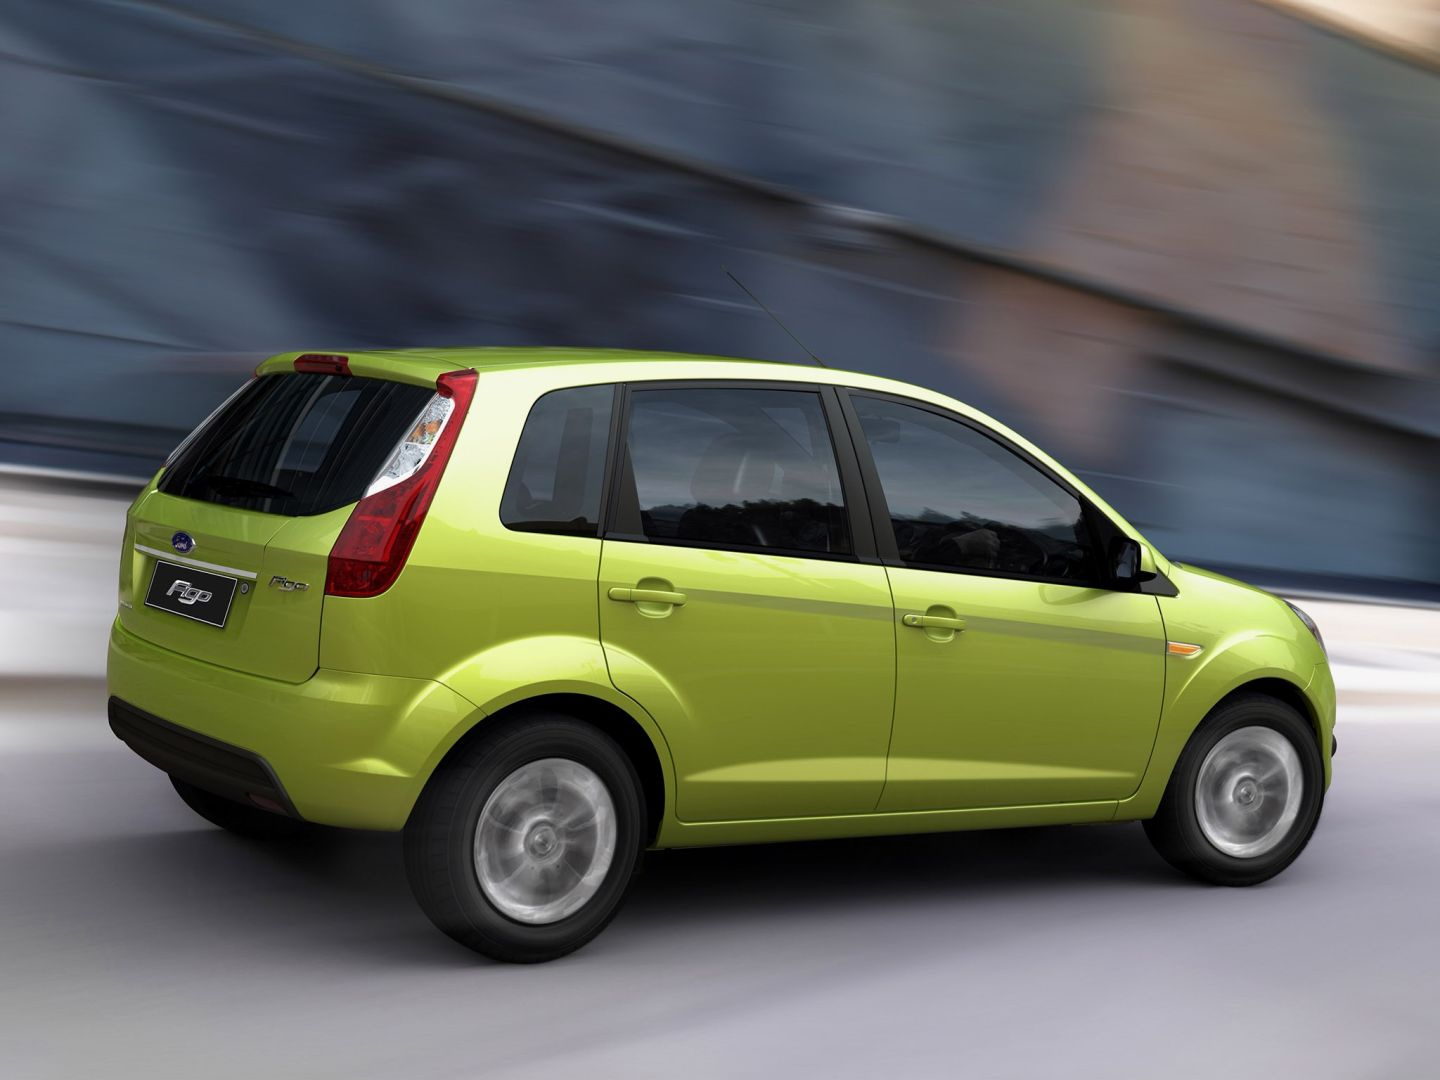 Ford Diesel Cars Price In India